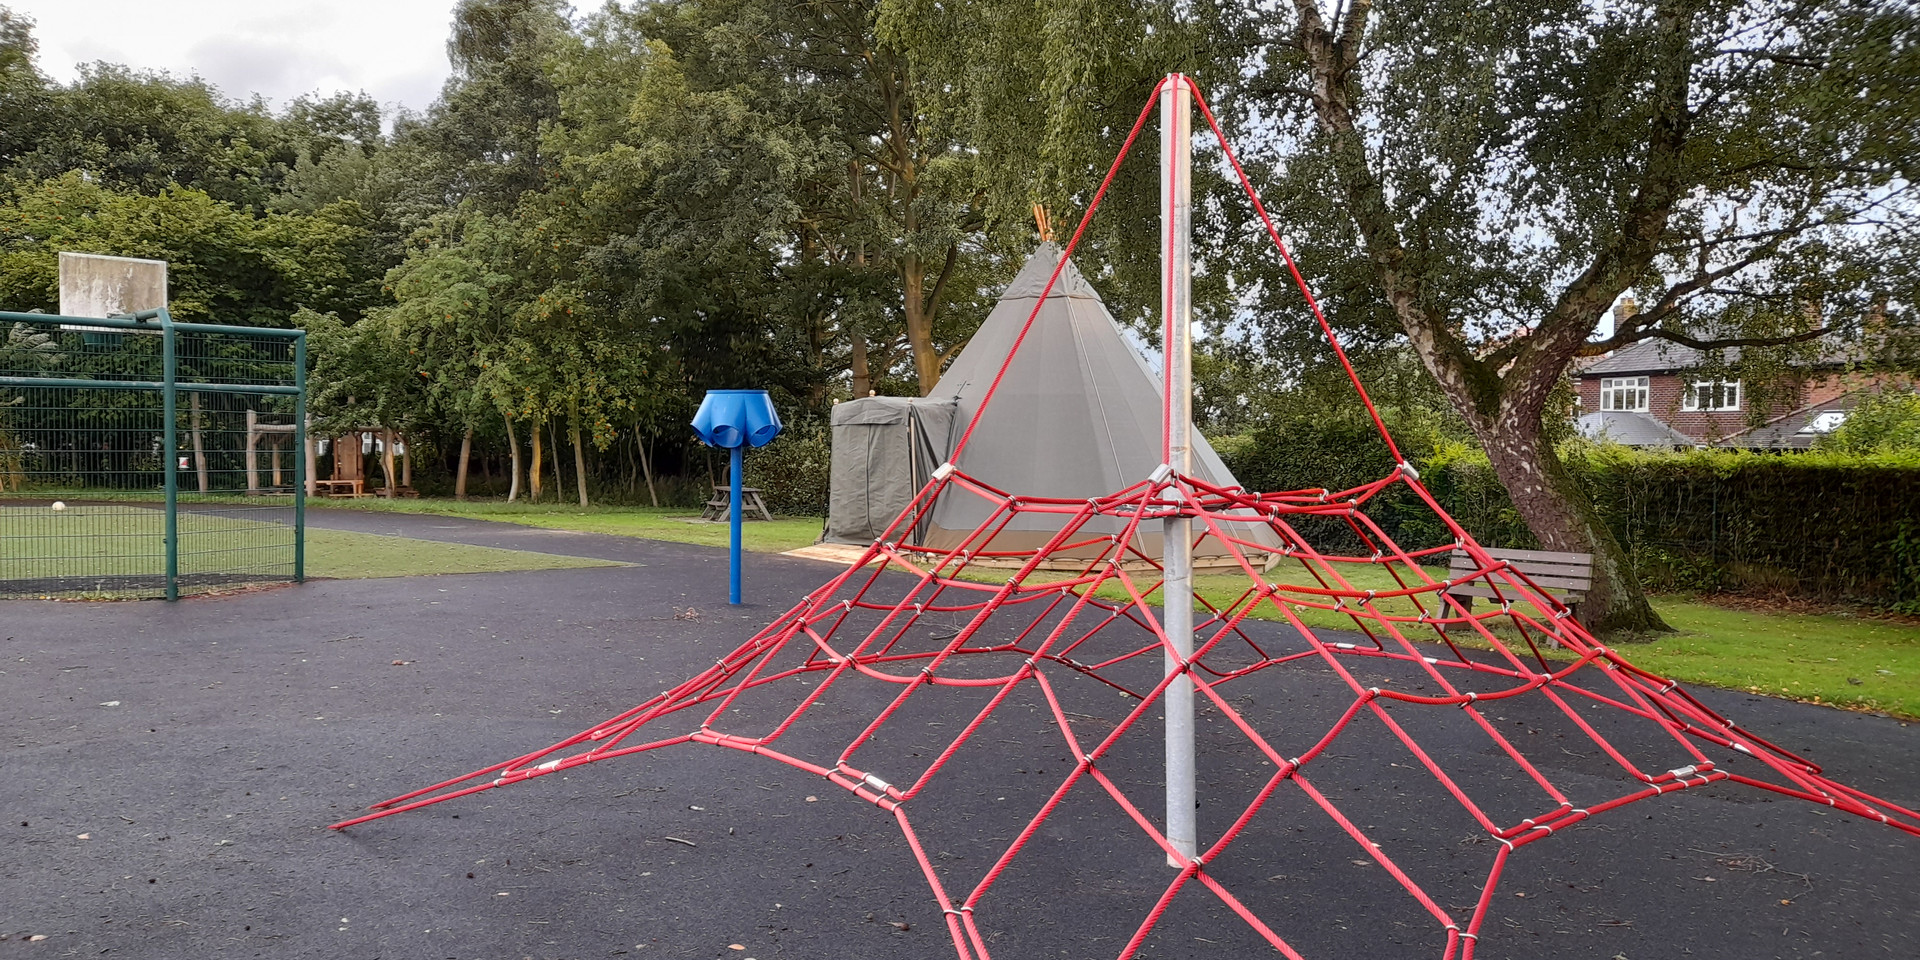 Tipi in a Playground